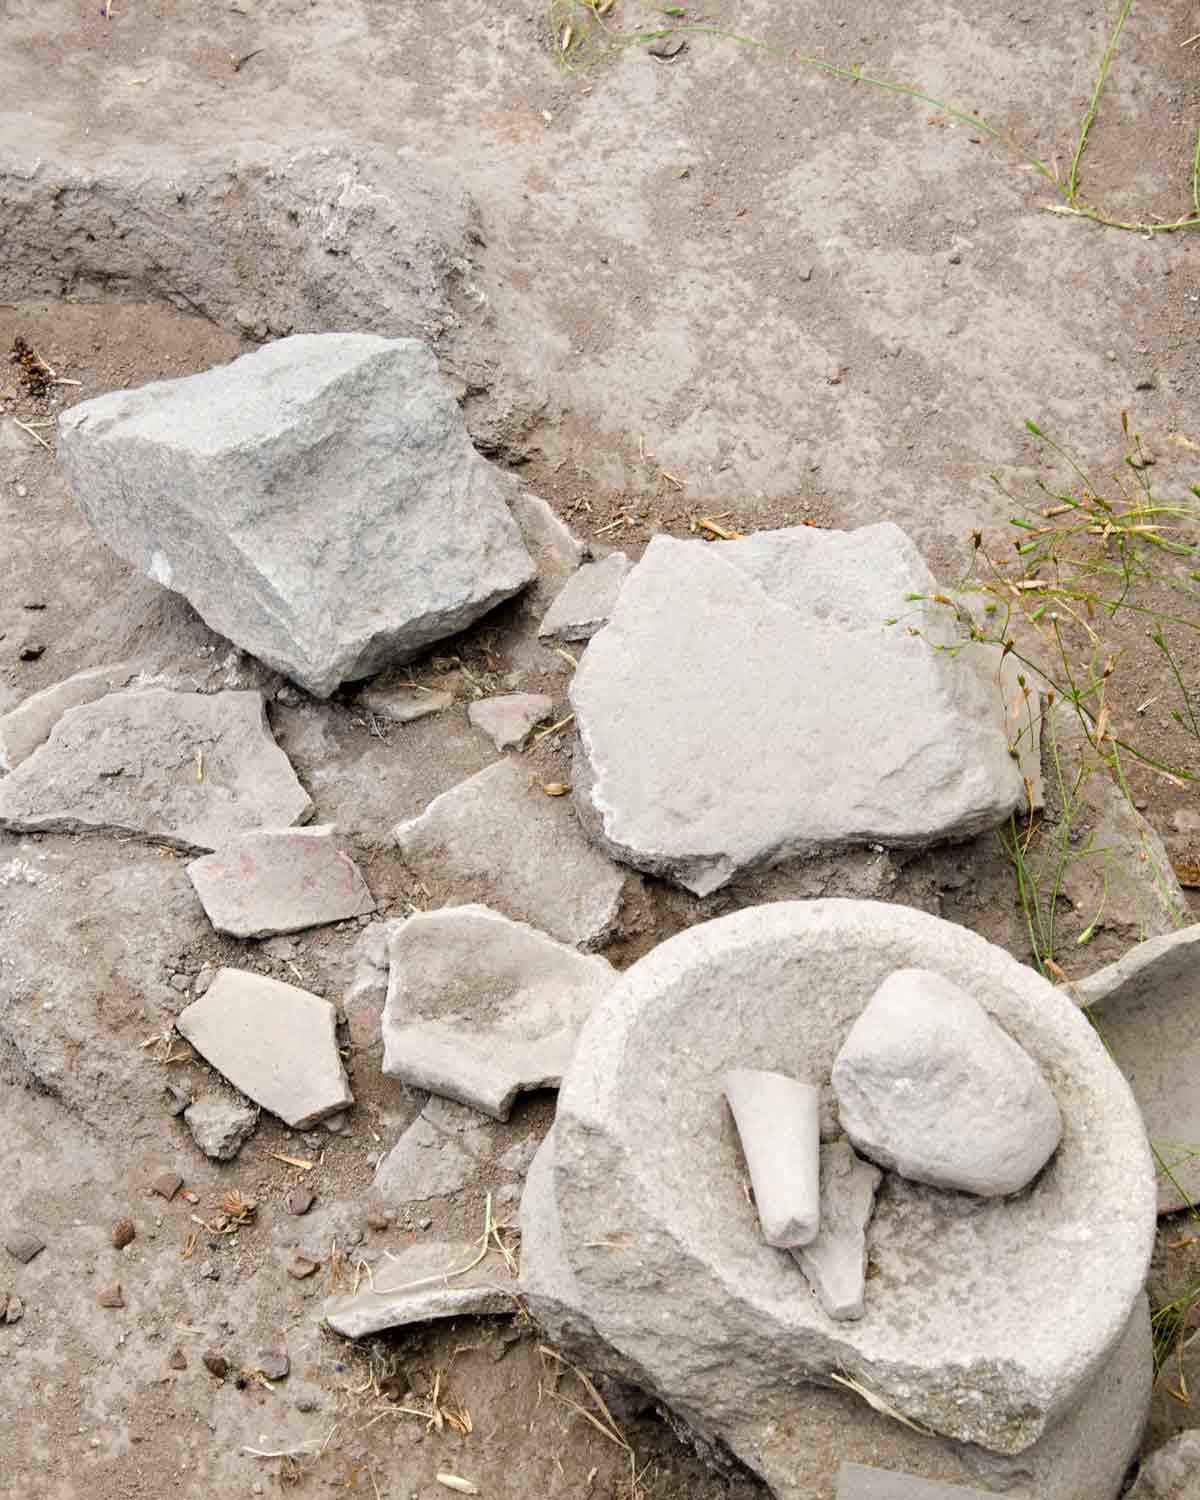 Ancient Stone Tools, Rumipamba, Quito, Ecuador | ©Angela Drake